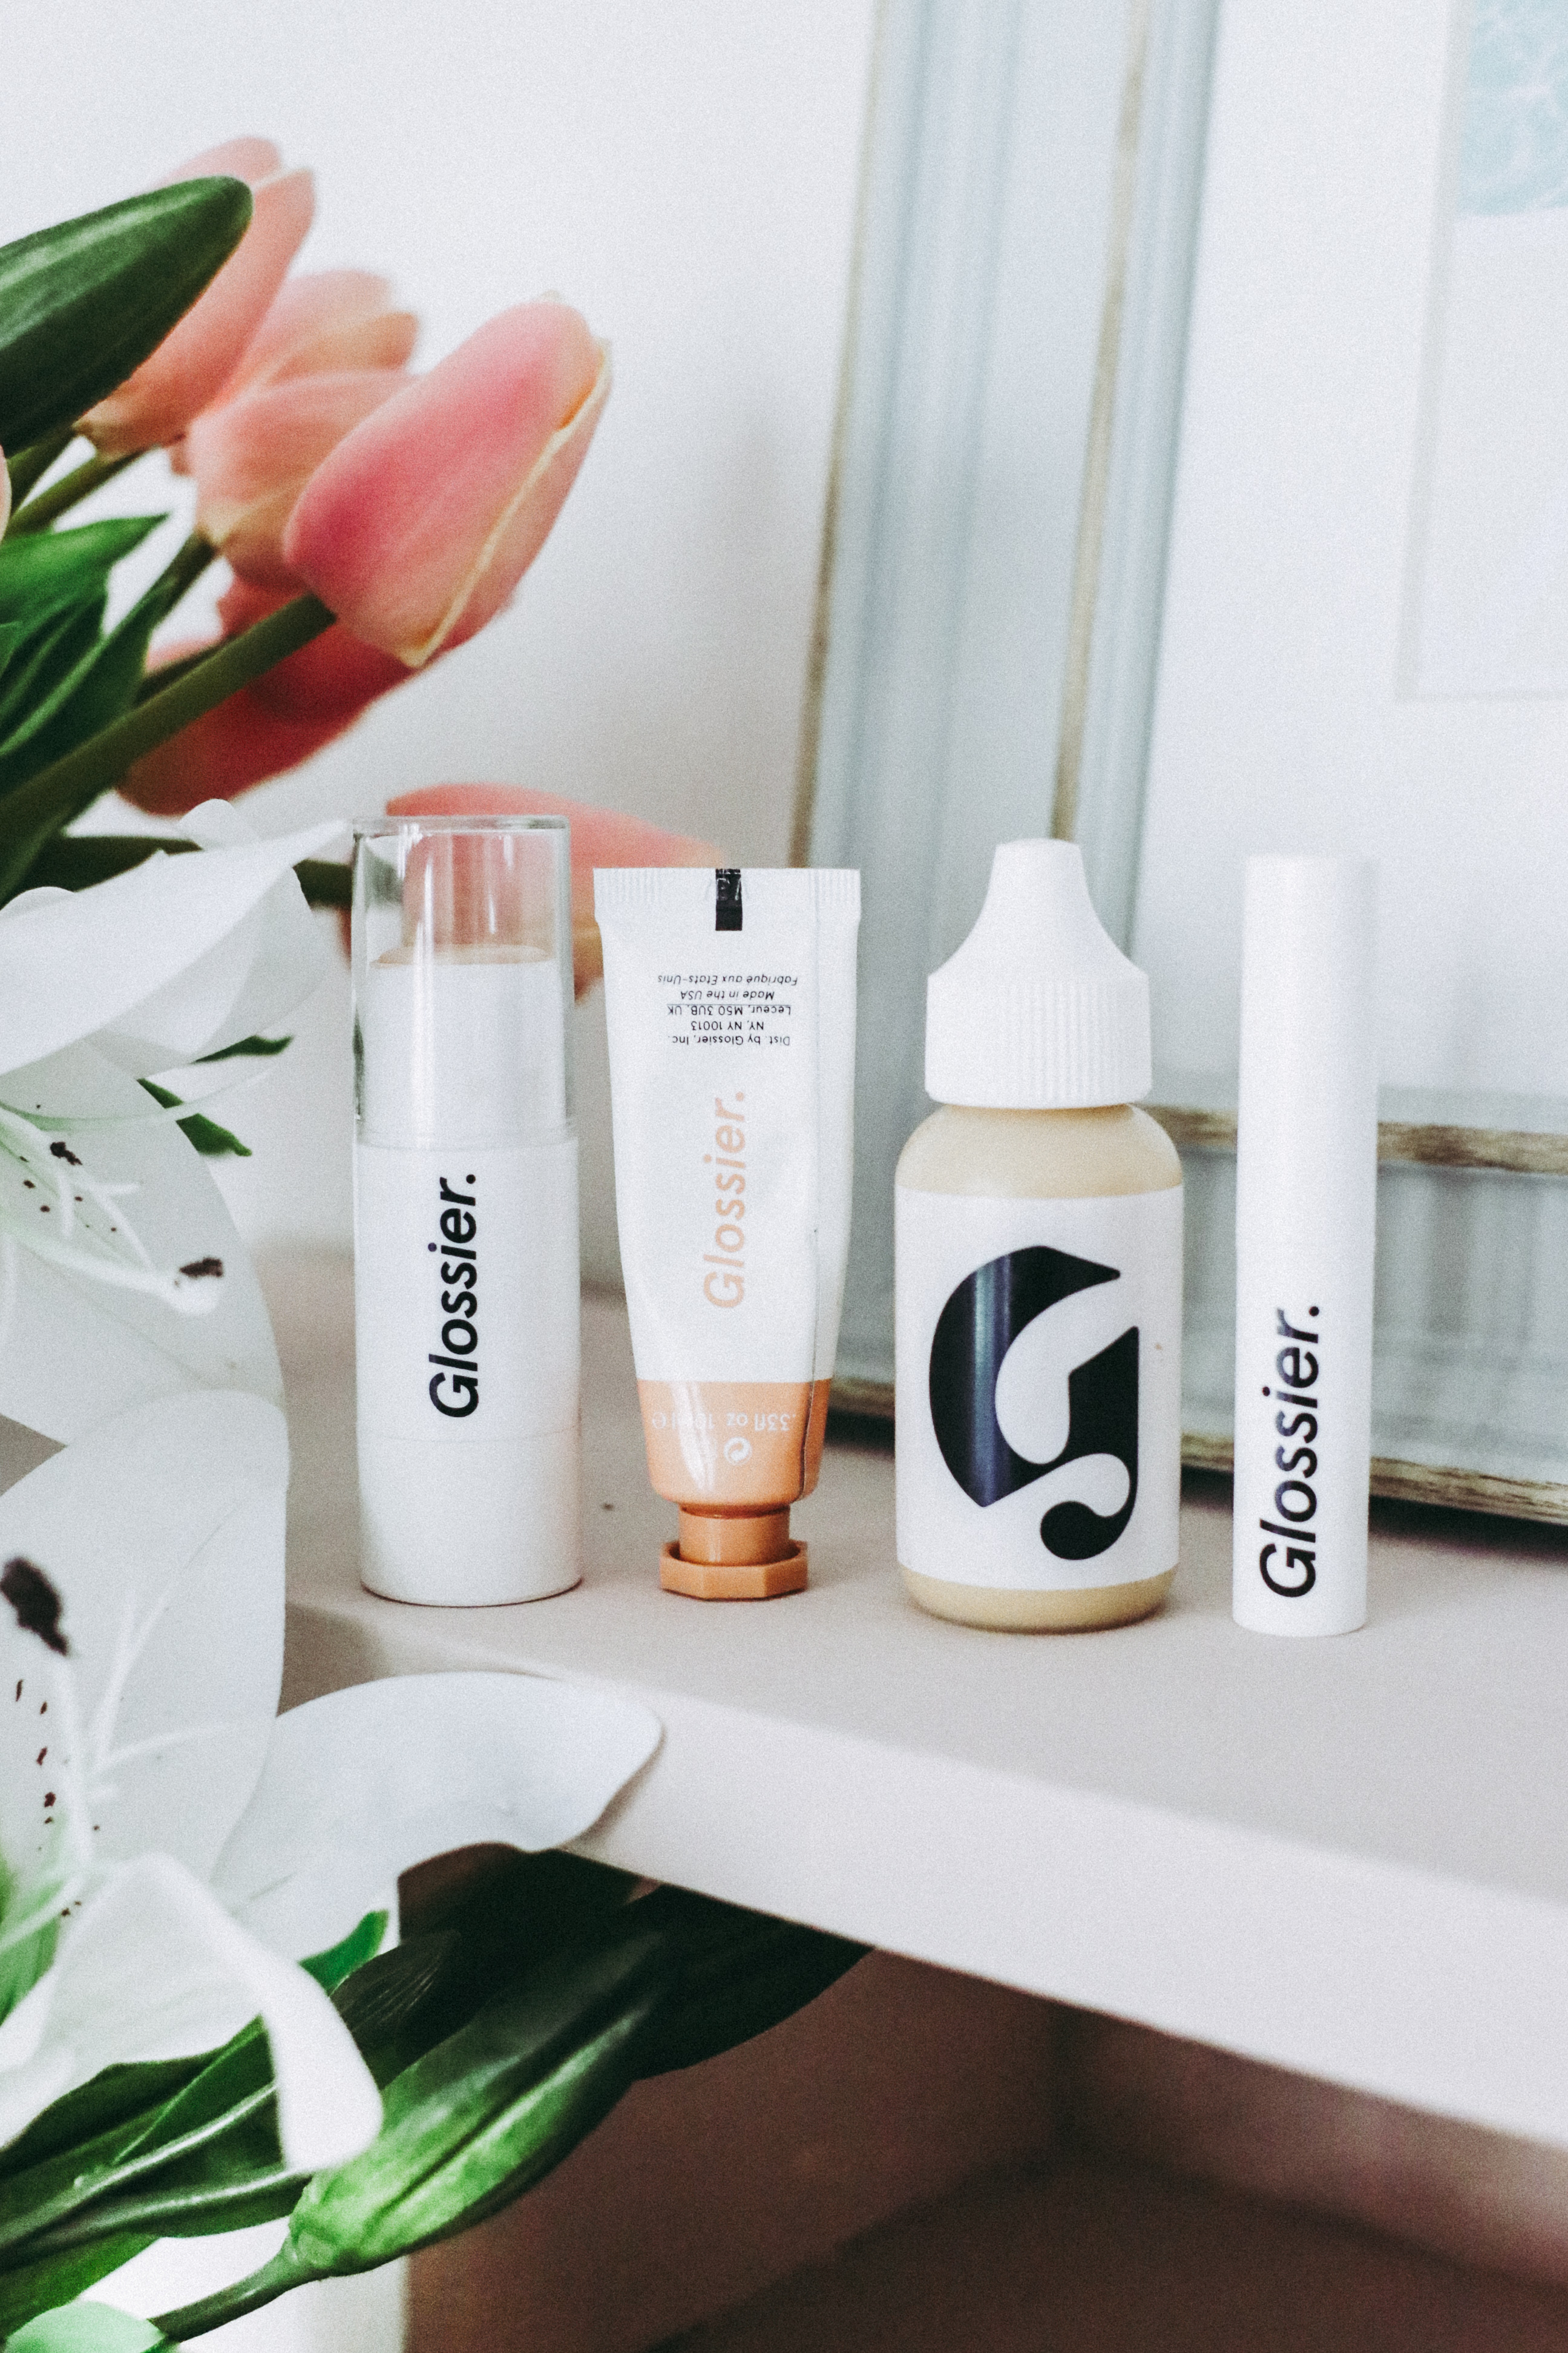 Glossier Makeup Review Video The Casual Free Browse the best glossier product reviews as rated by temptalia and our community as well as view glossier swatches and dupes in our database. glossier makeup review video the